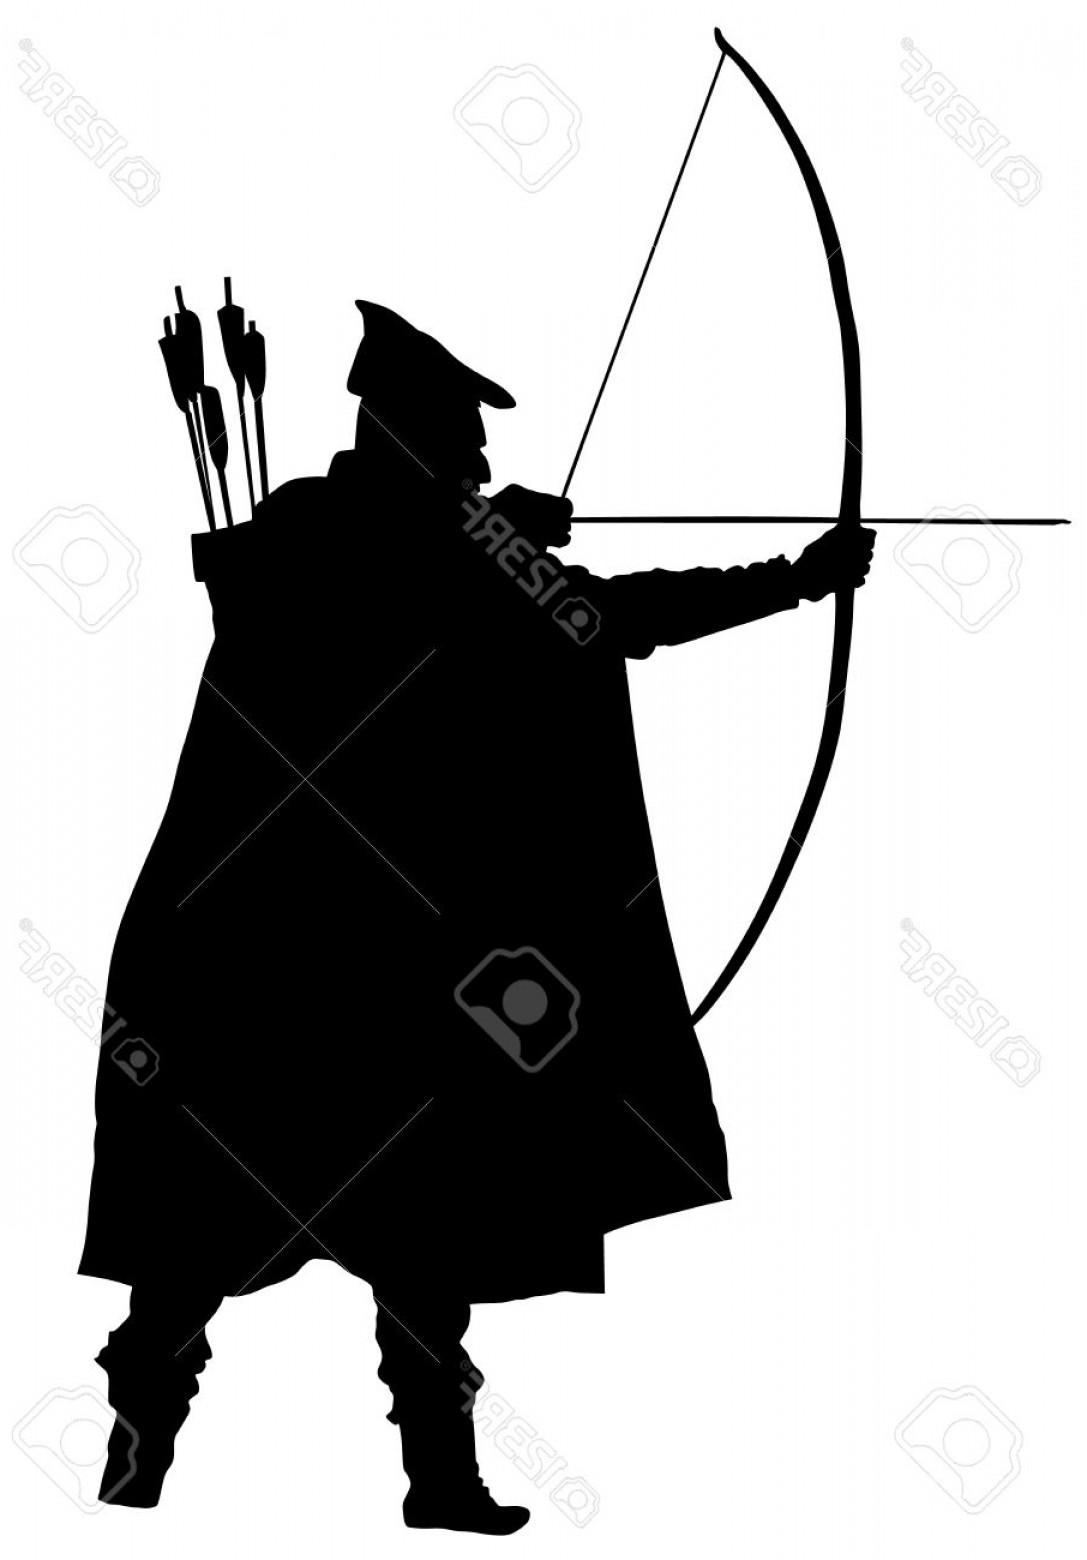 Vector Archery Silhouette: Photostock Vector Archer Vector Silhouettes On The White Background Robin Hood Silhouette Vector